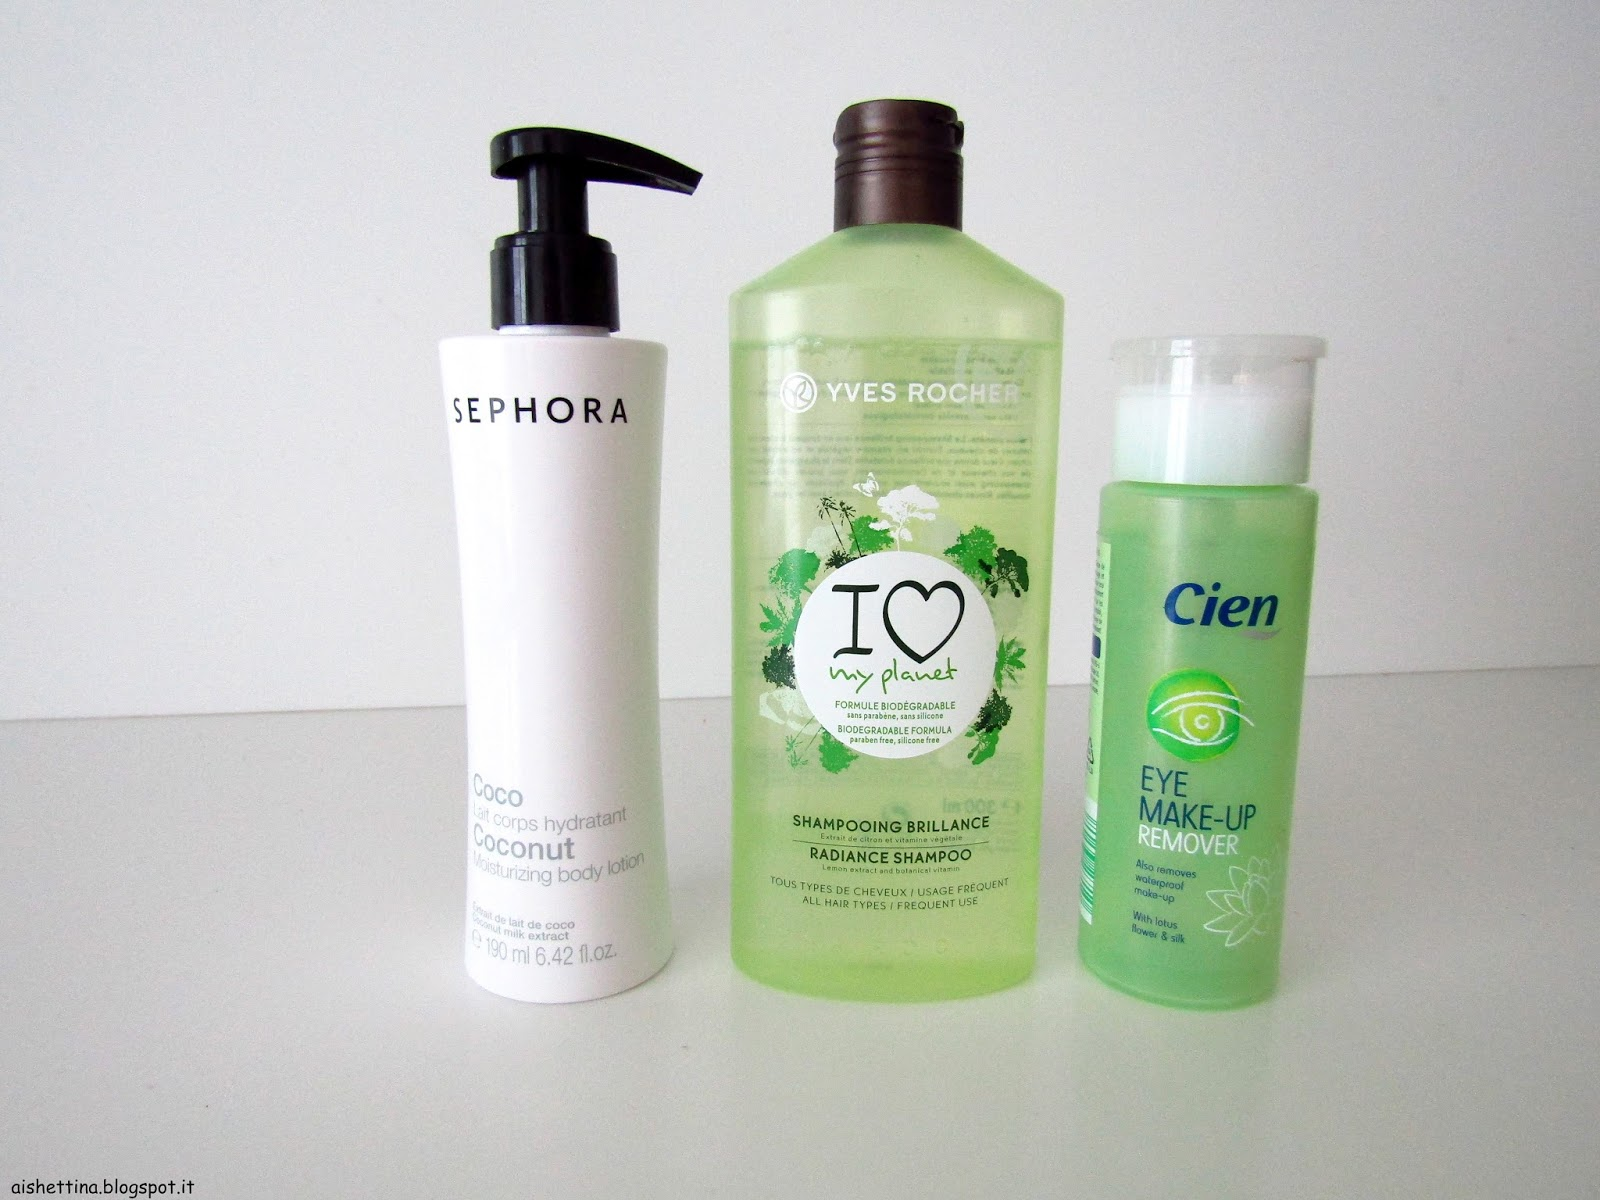 sephora body cream, yves rocher shampoo and cien eye makeup remover